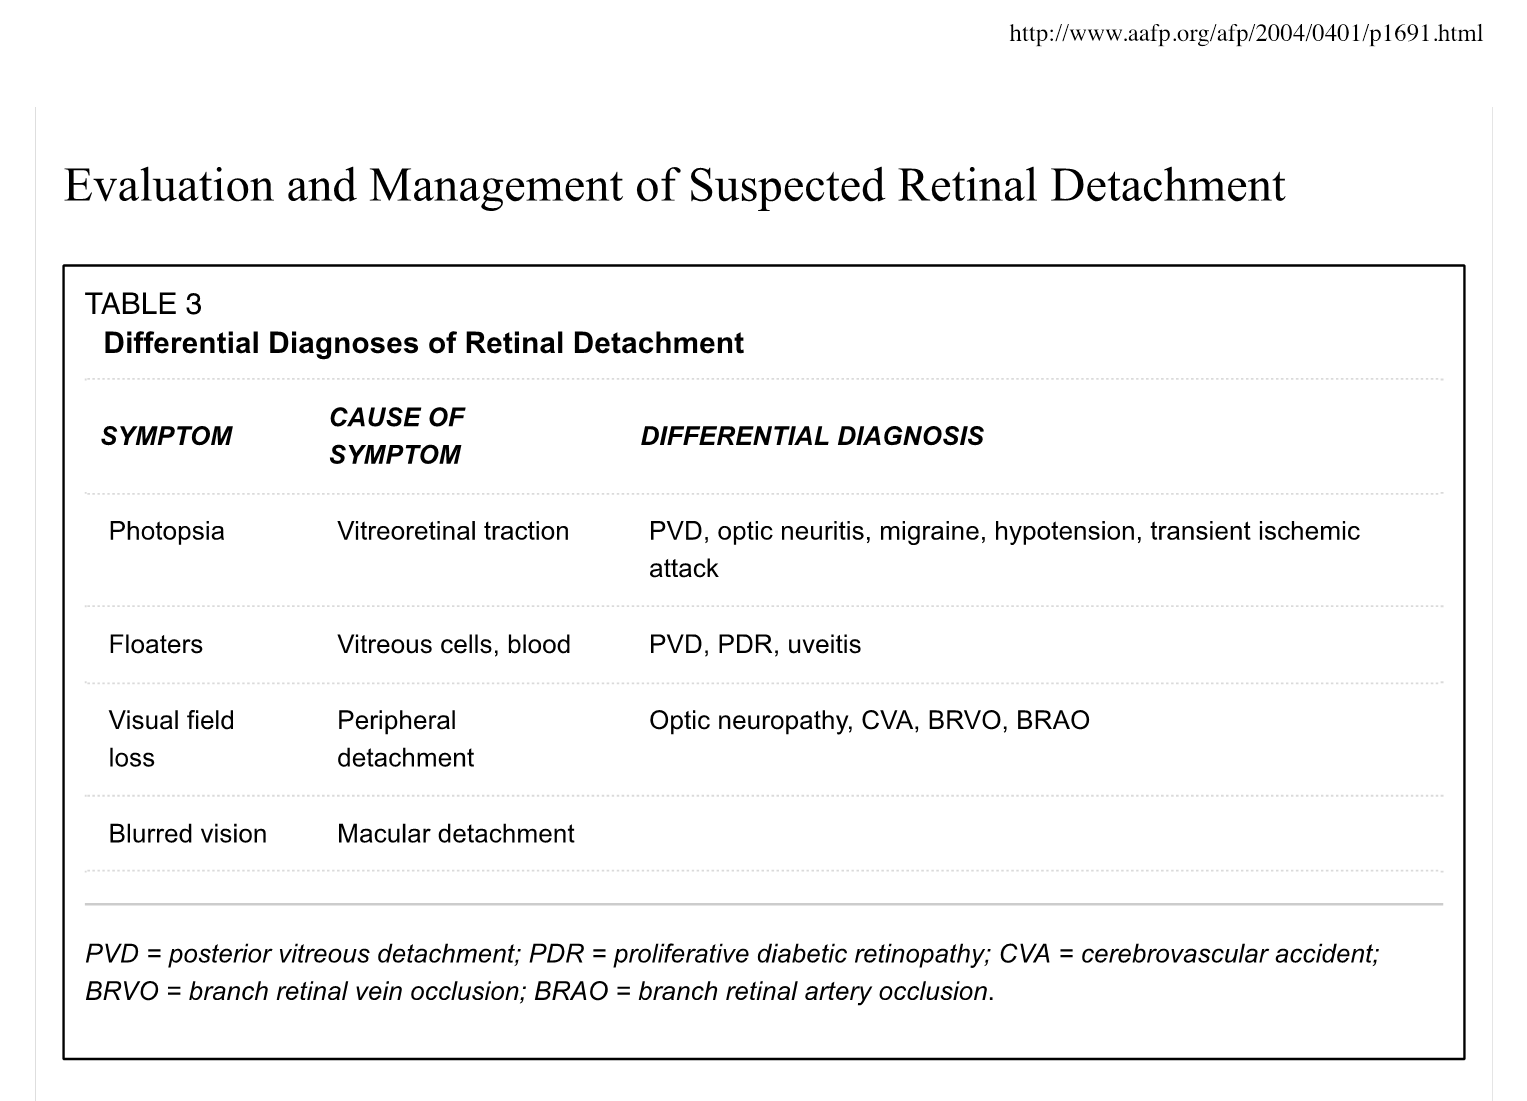 Table 1: Differential diagnoses of retinal detachment. Borrowed from  http://www.aafp.org/afp/2004/0401/p1691.html